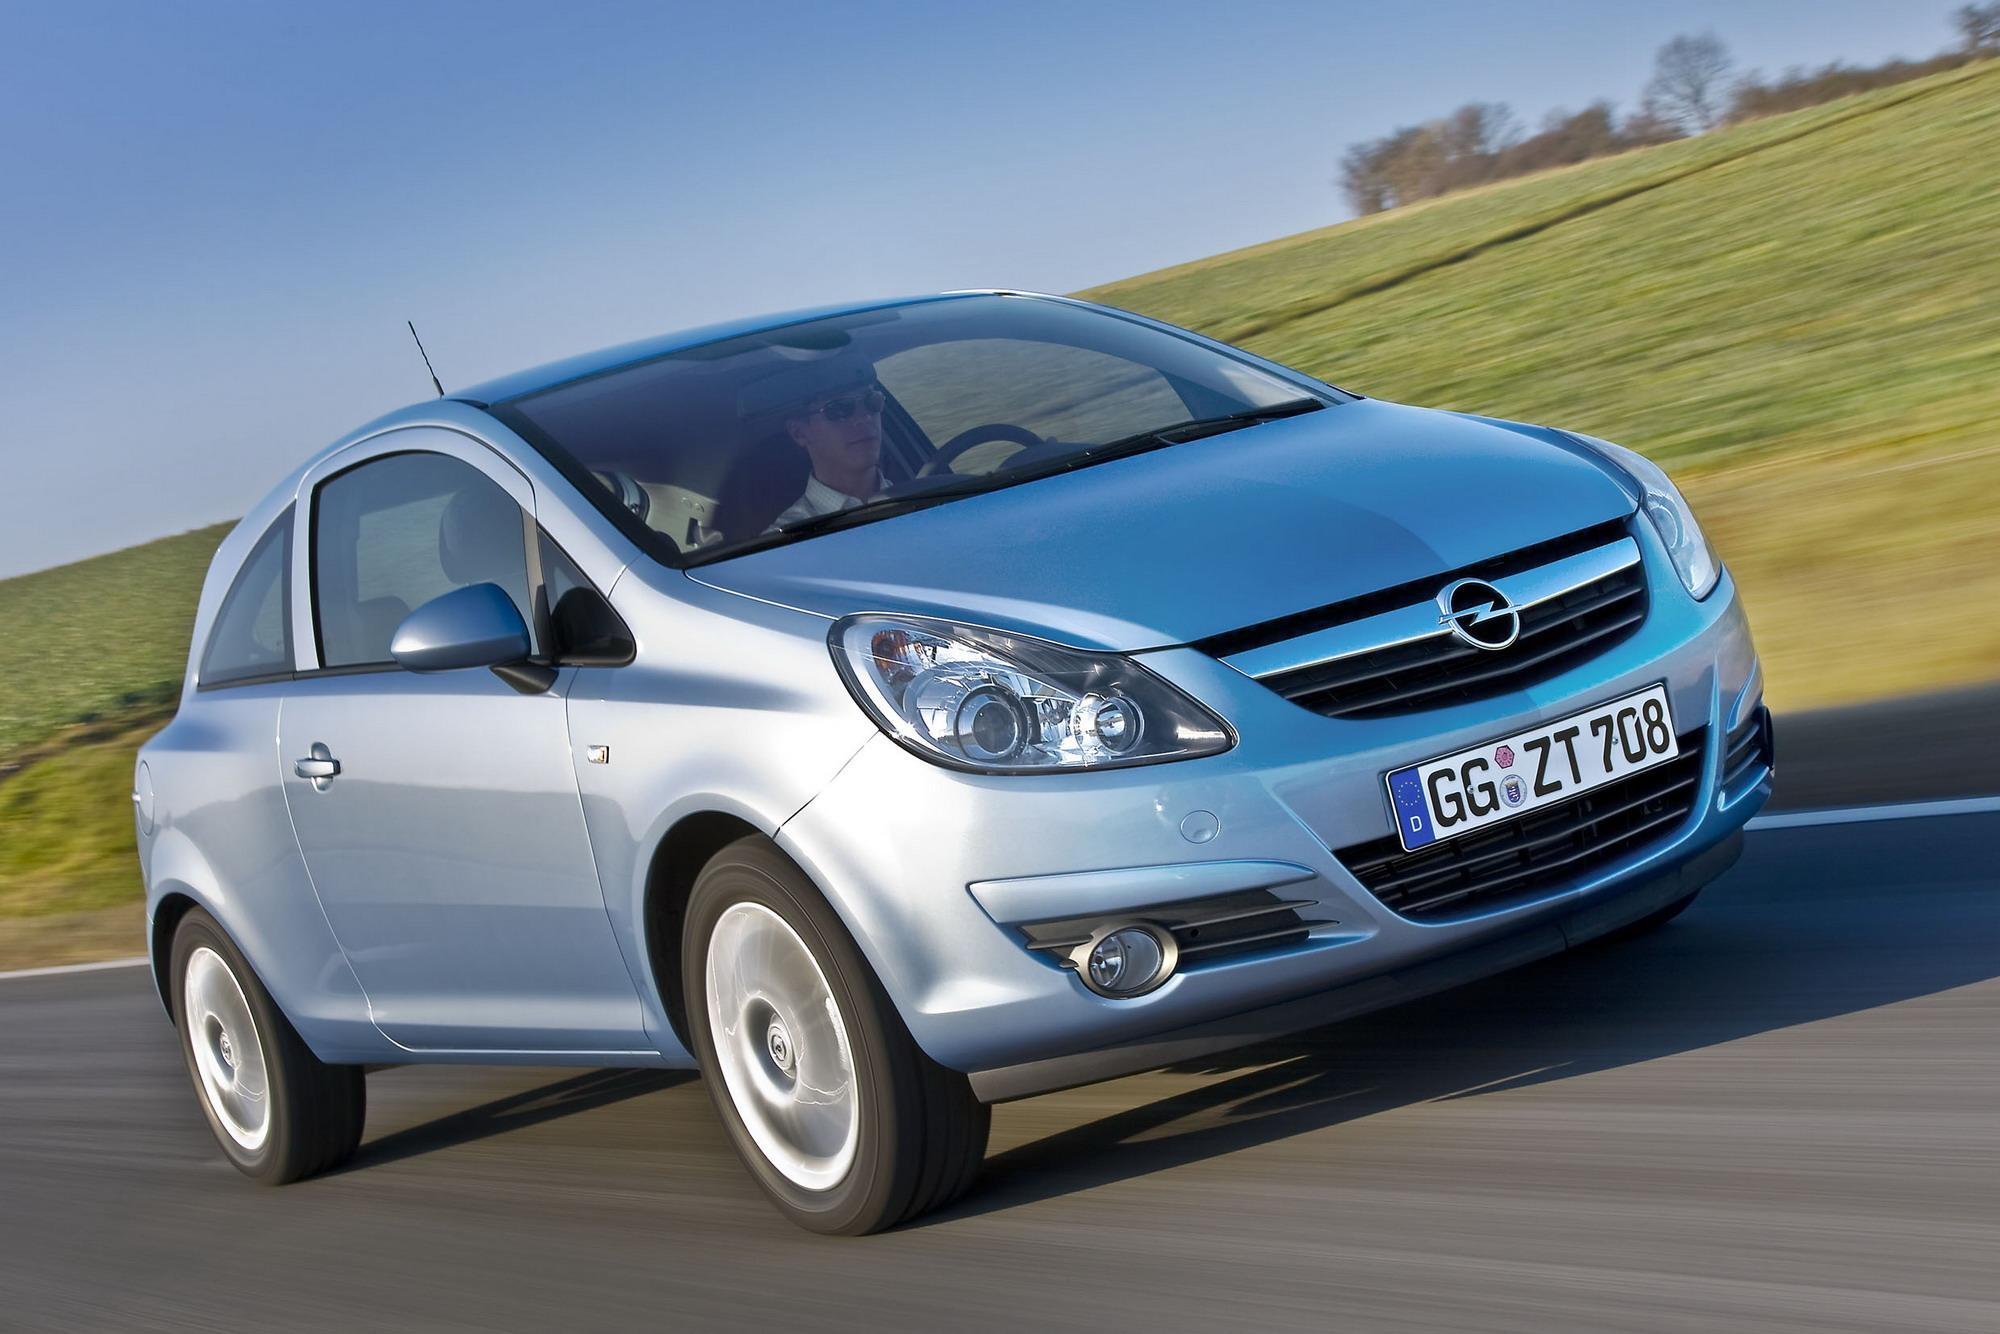 2008 opel corsa and astra ecoflex review gallery top speed. Black Bedroom Furniture Sets. Home Design Ideas